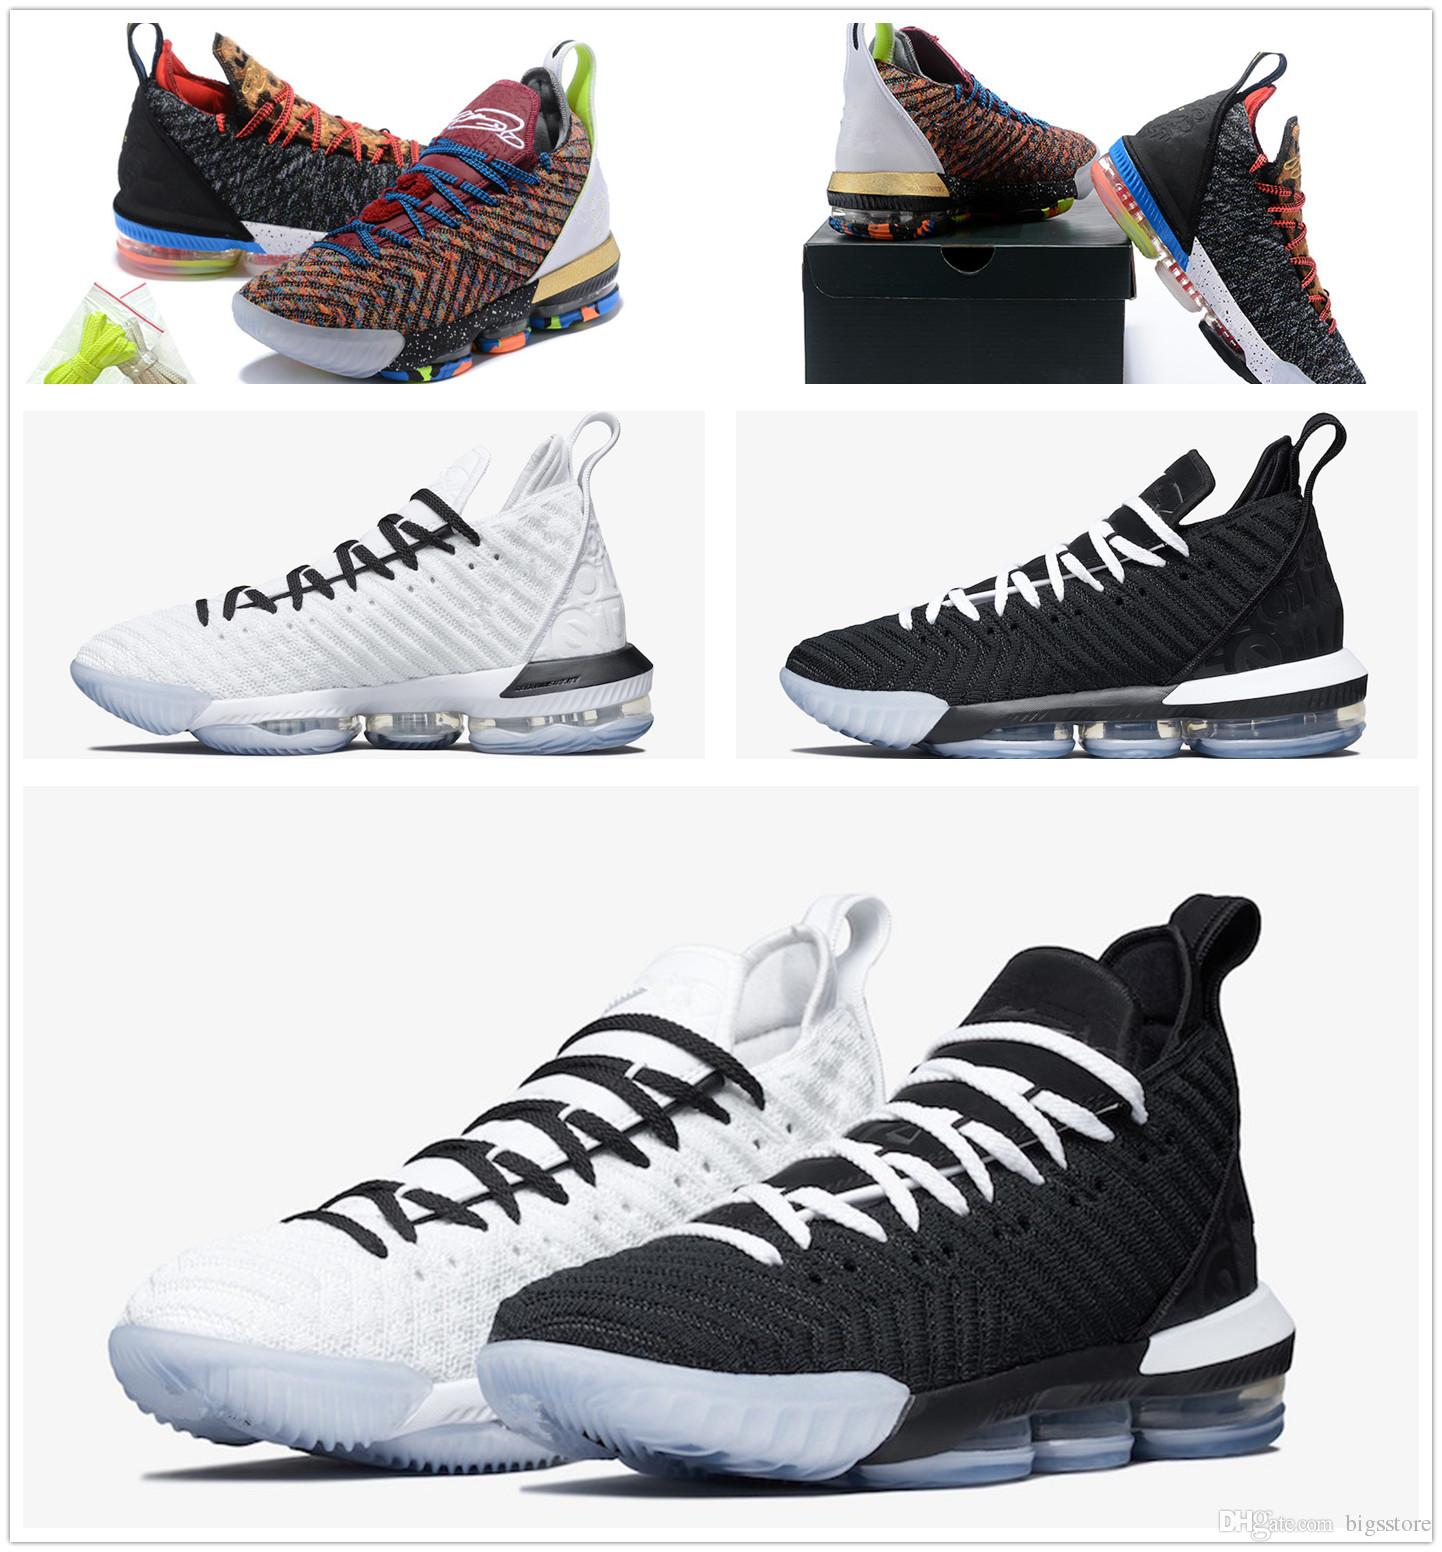 02f5c544b4d 2019 LeBron Shoes James 16 I M King LeBron 16 Equality Lebron XVI EP 1 Mid  Lakers Size Us7 Us12 From Bigsstore